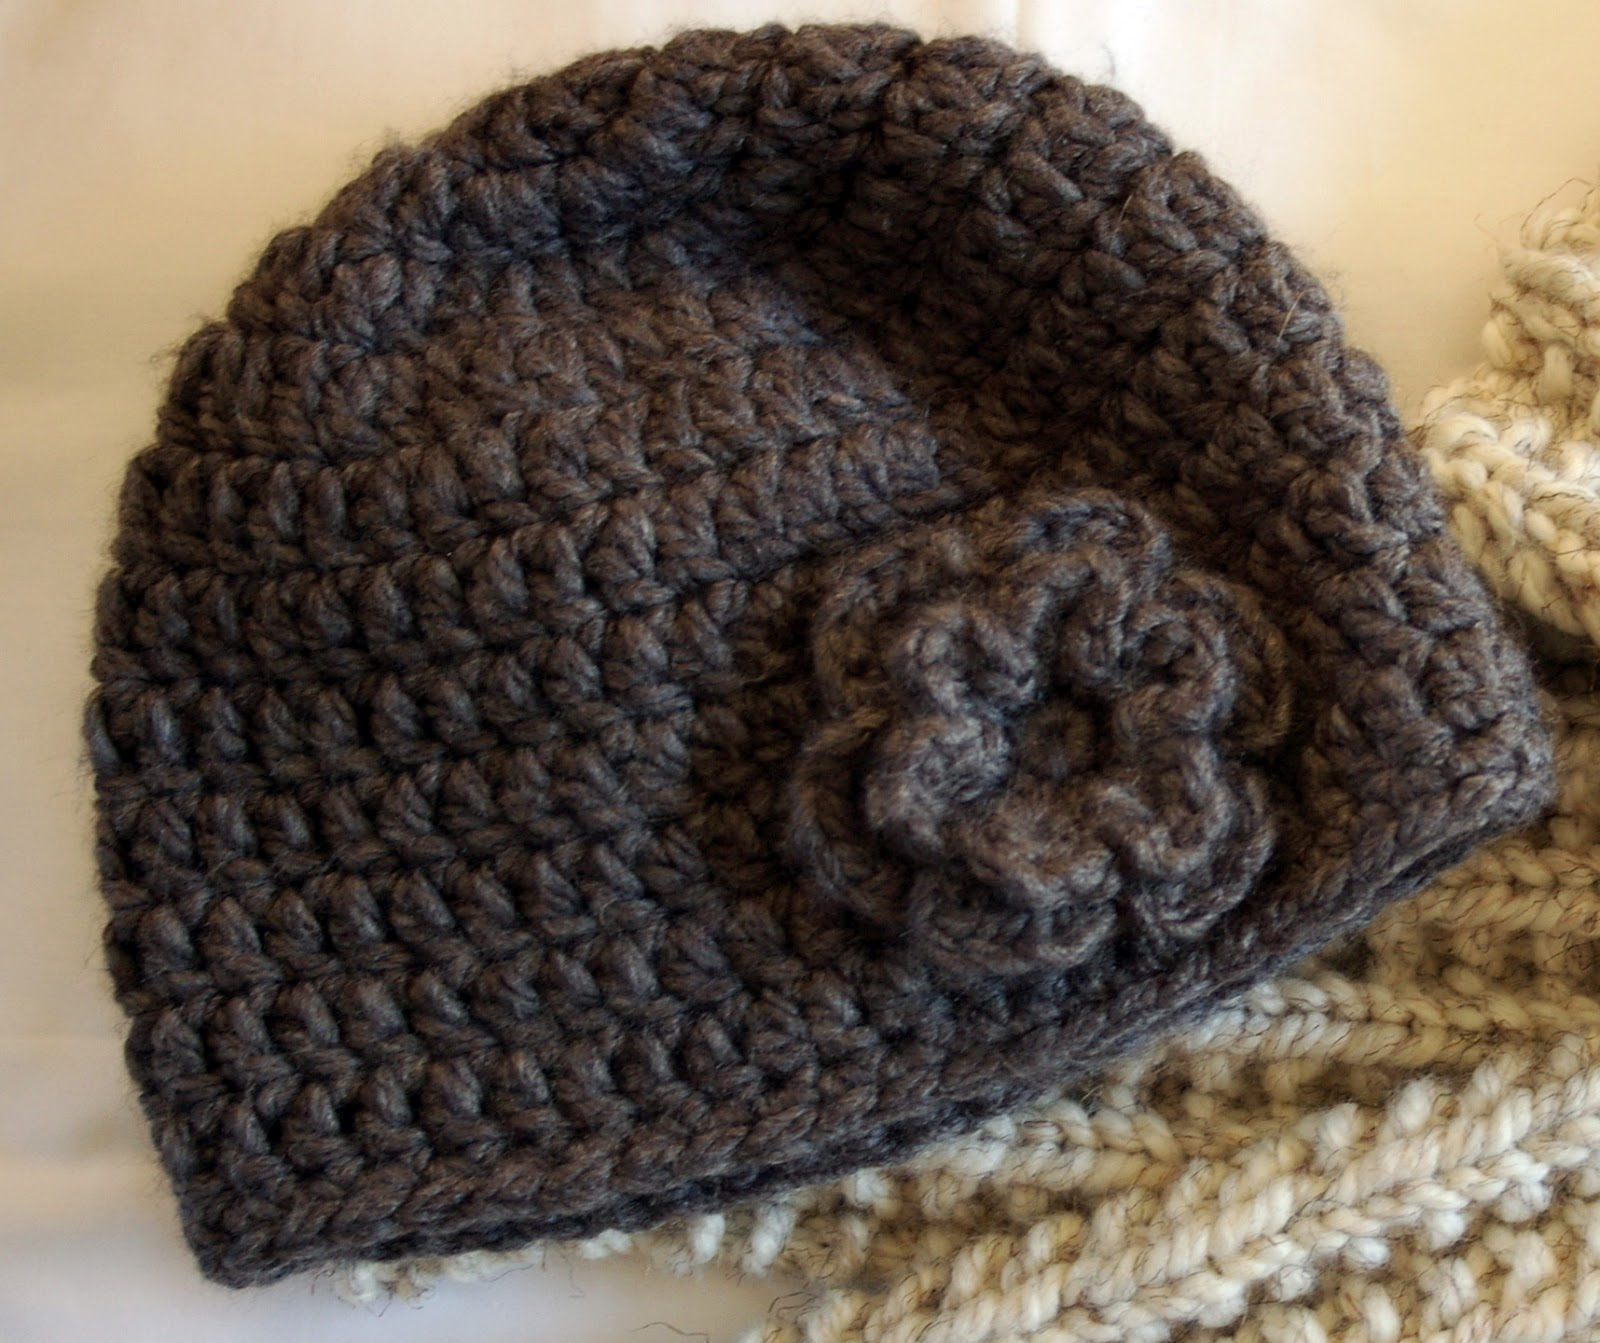 Free Patterns Crochet Winter Hats : Crocheting the Day Away: ::Tutorials and Free Patterns::